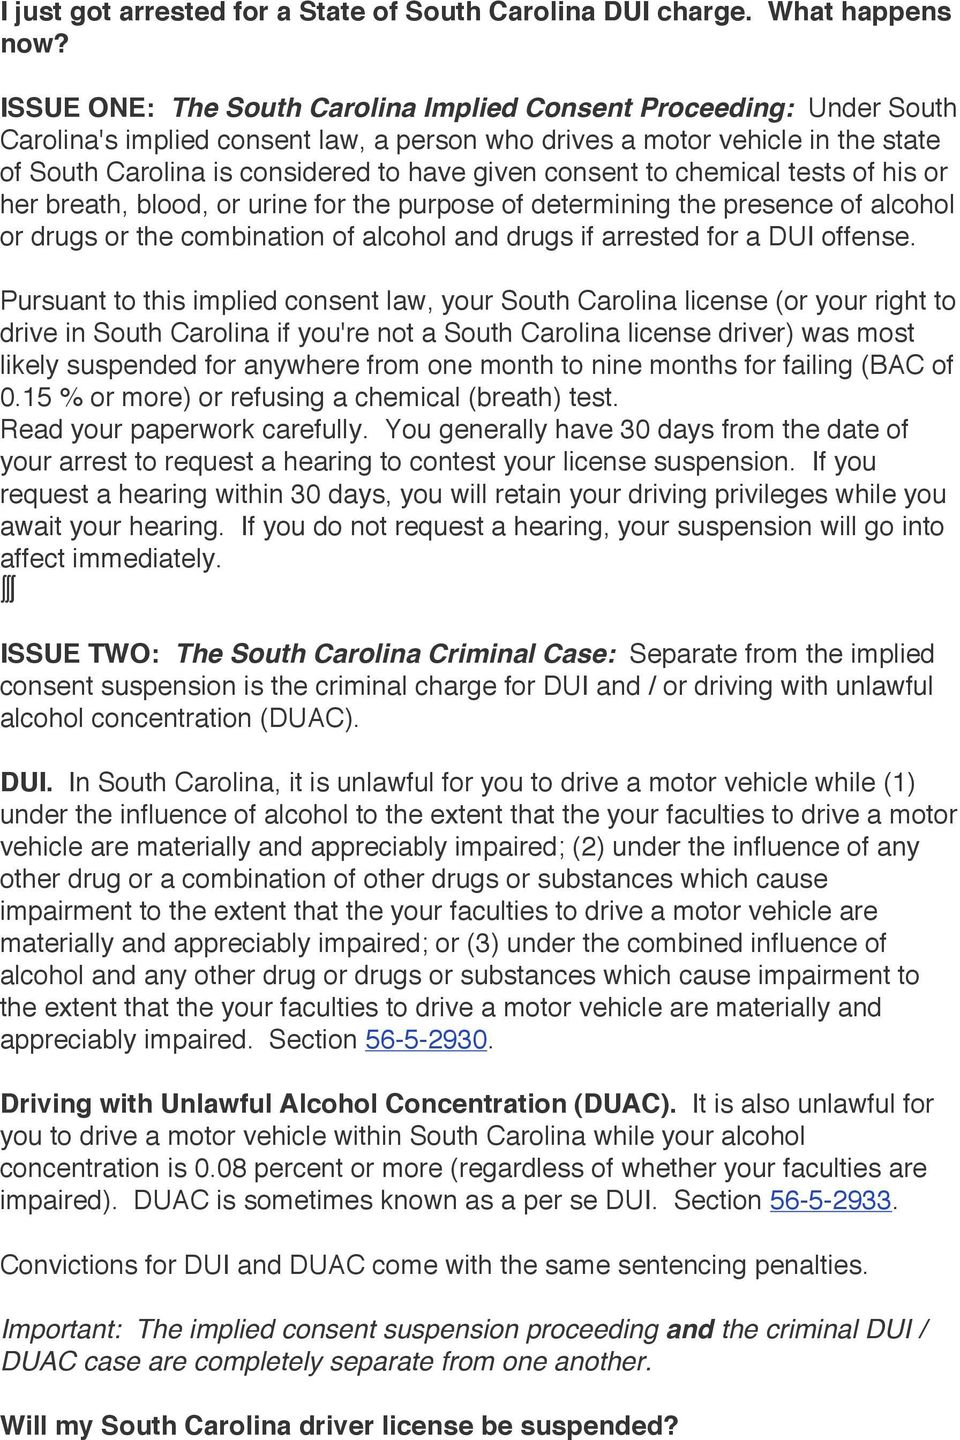 consent to chemical tests of his or her breath, blood, or urine for the purpose of determining the presence of alcohol or drugs or the combination of alcohol and drugs if arrested for a DUI offense.